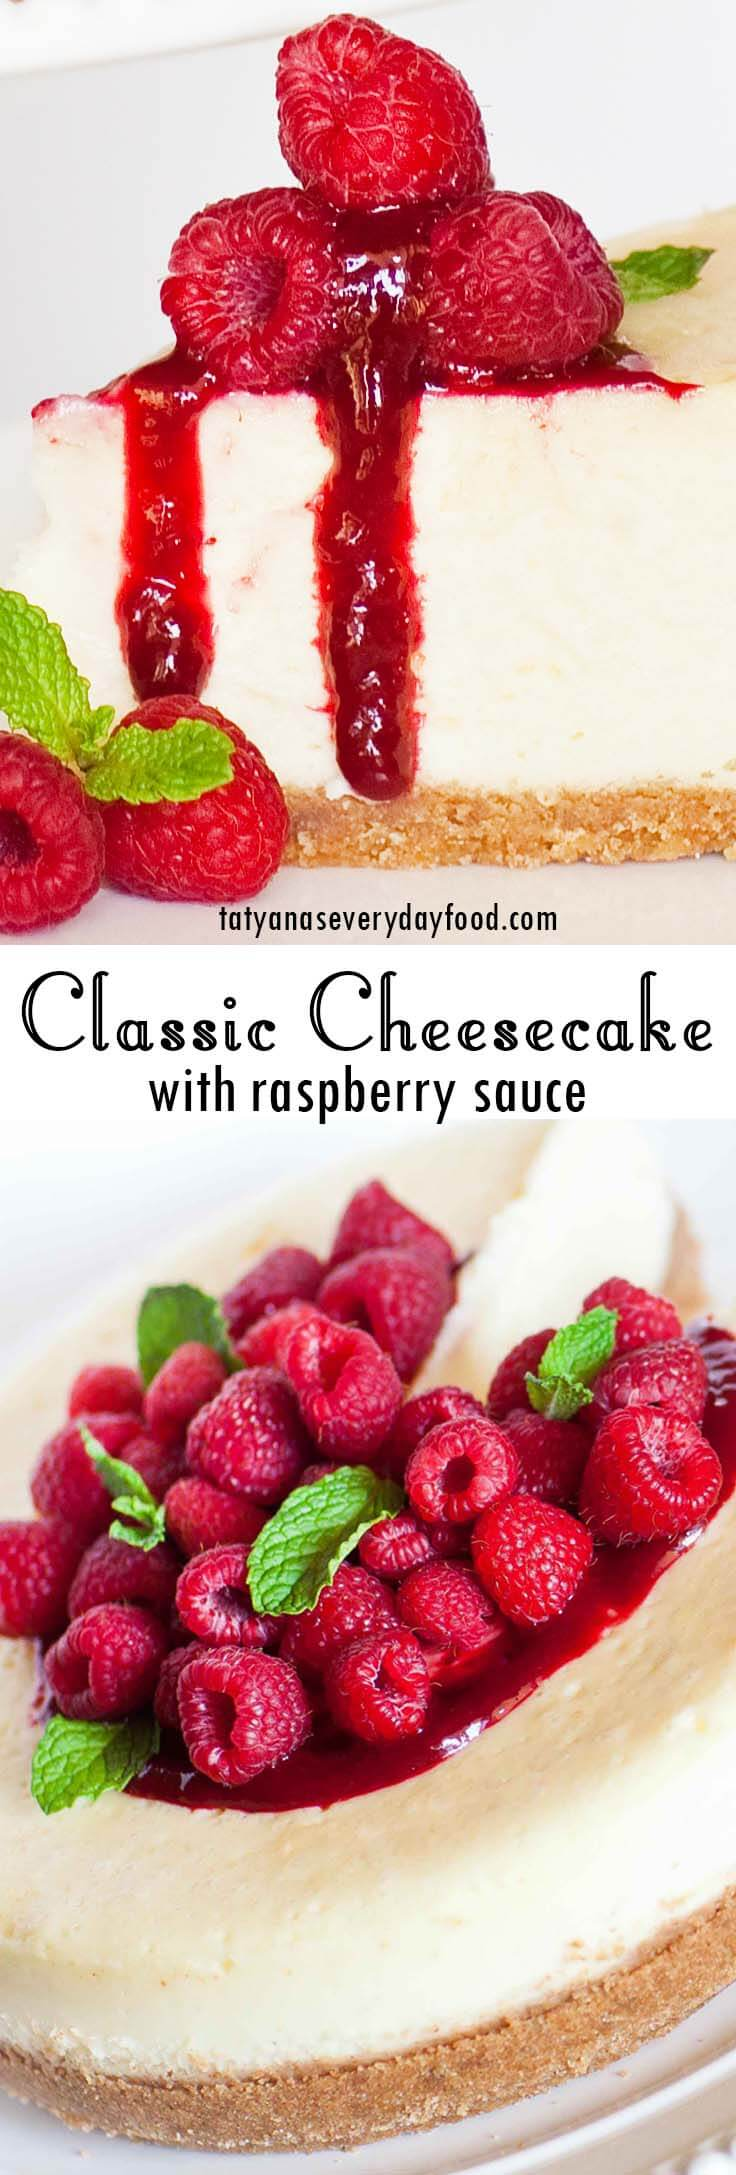 Classic Cheesecake with raspberry sauce video recipe